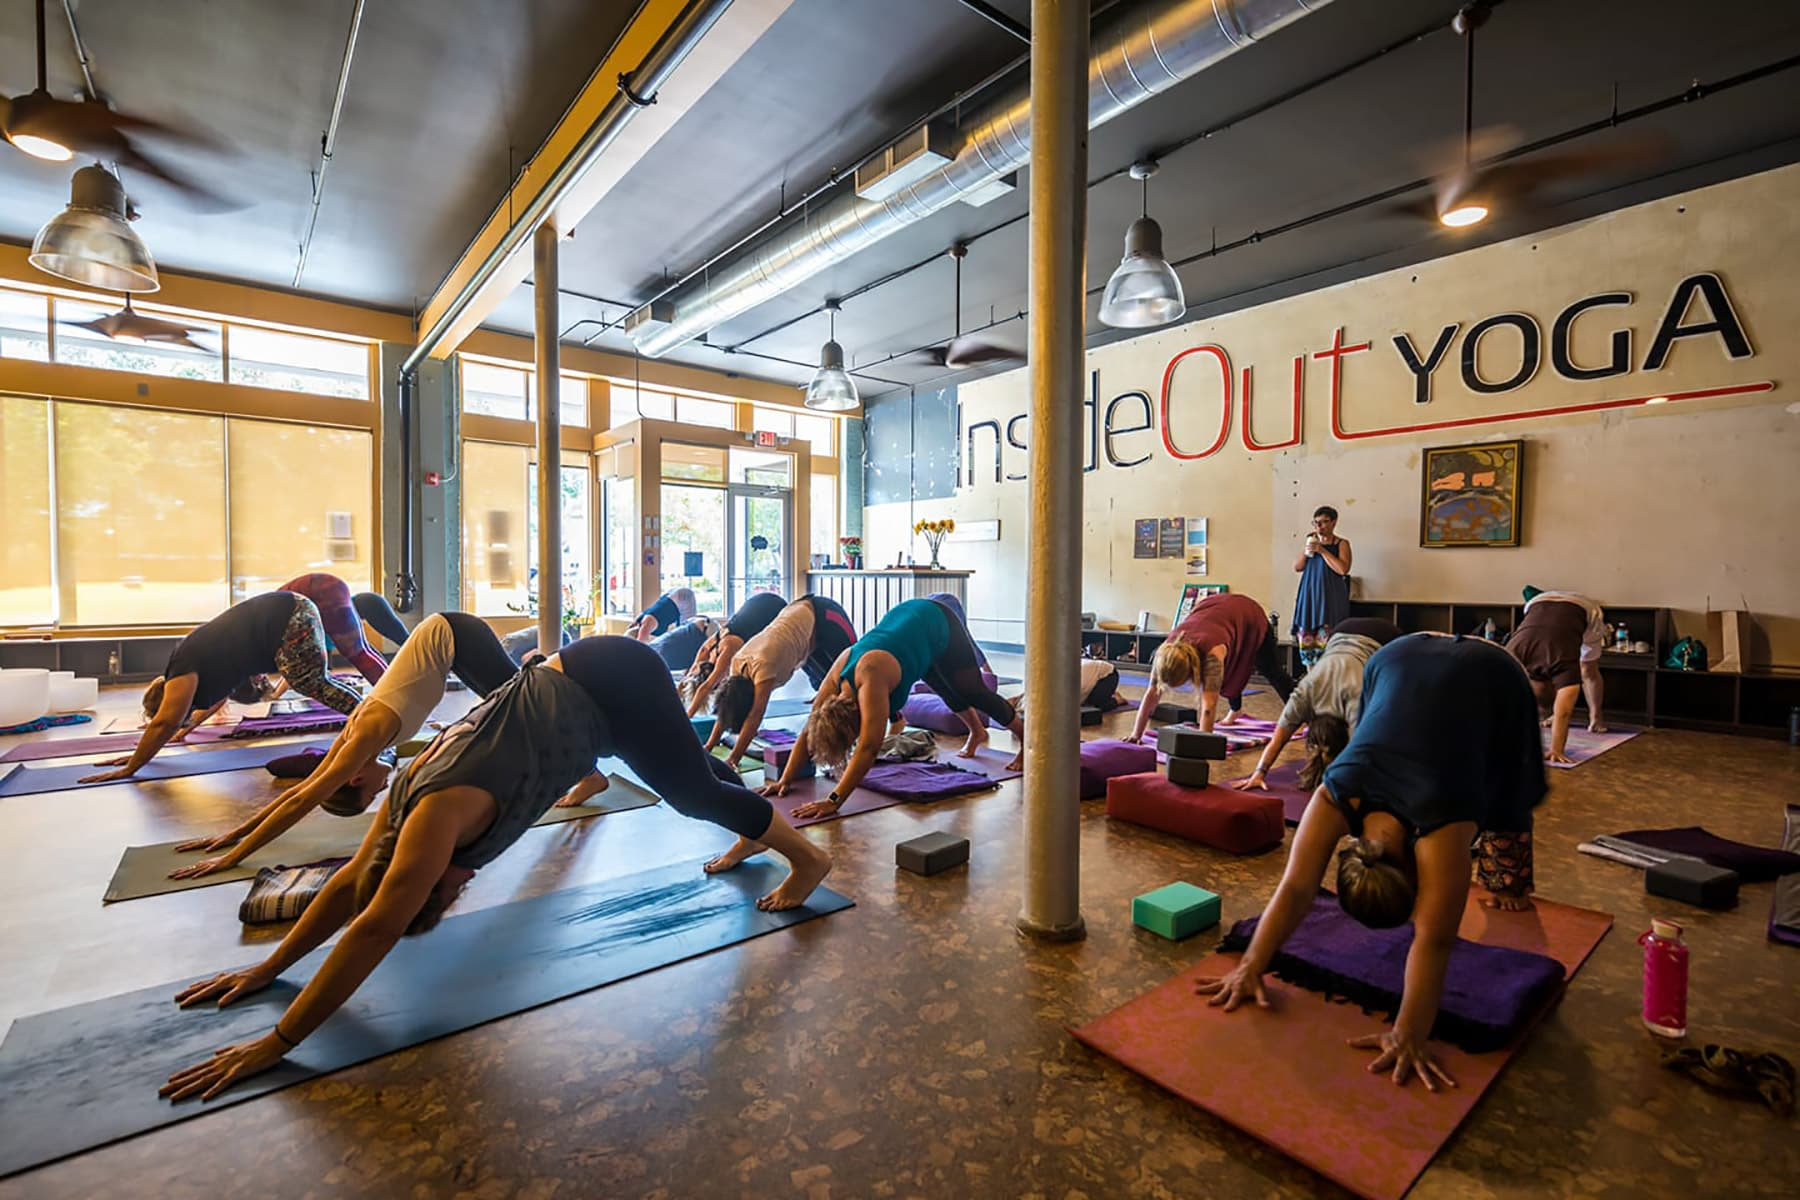 yoga class in session at Inside Out Yoga in downtown Winter Haven FL